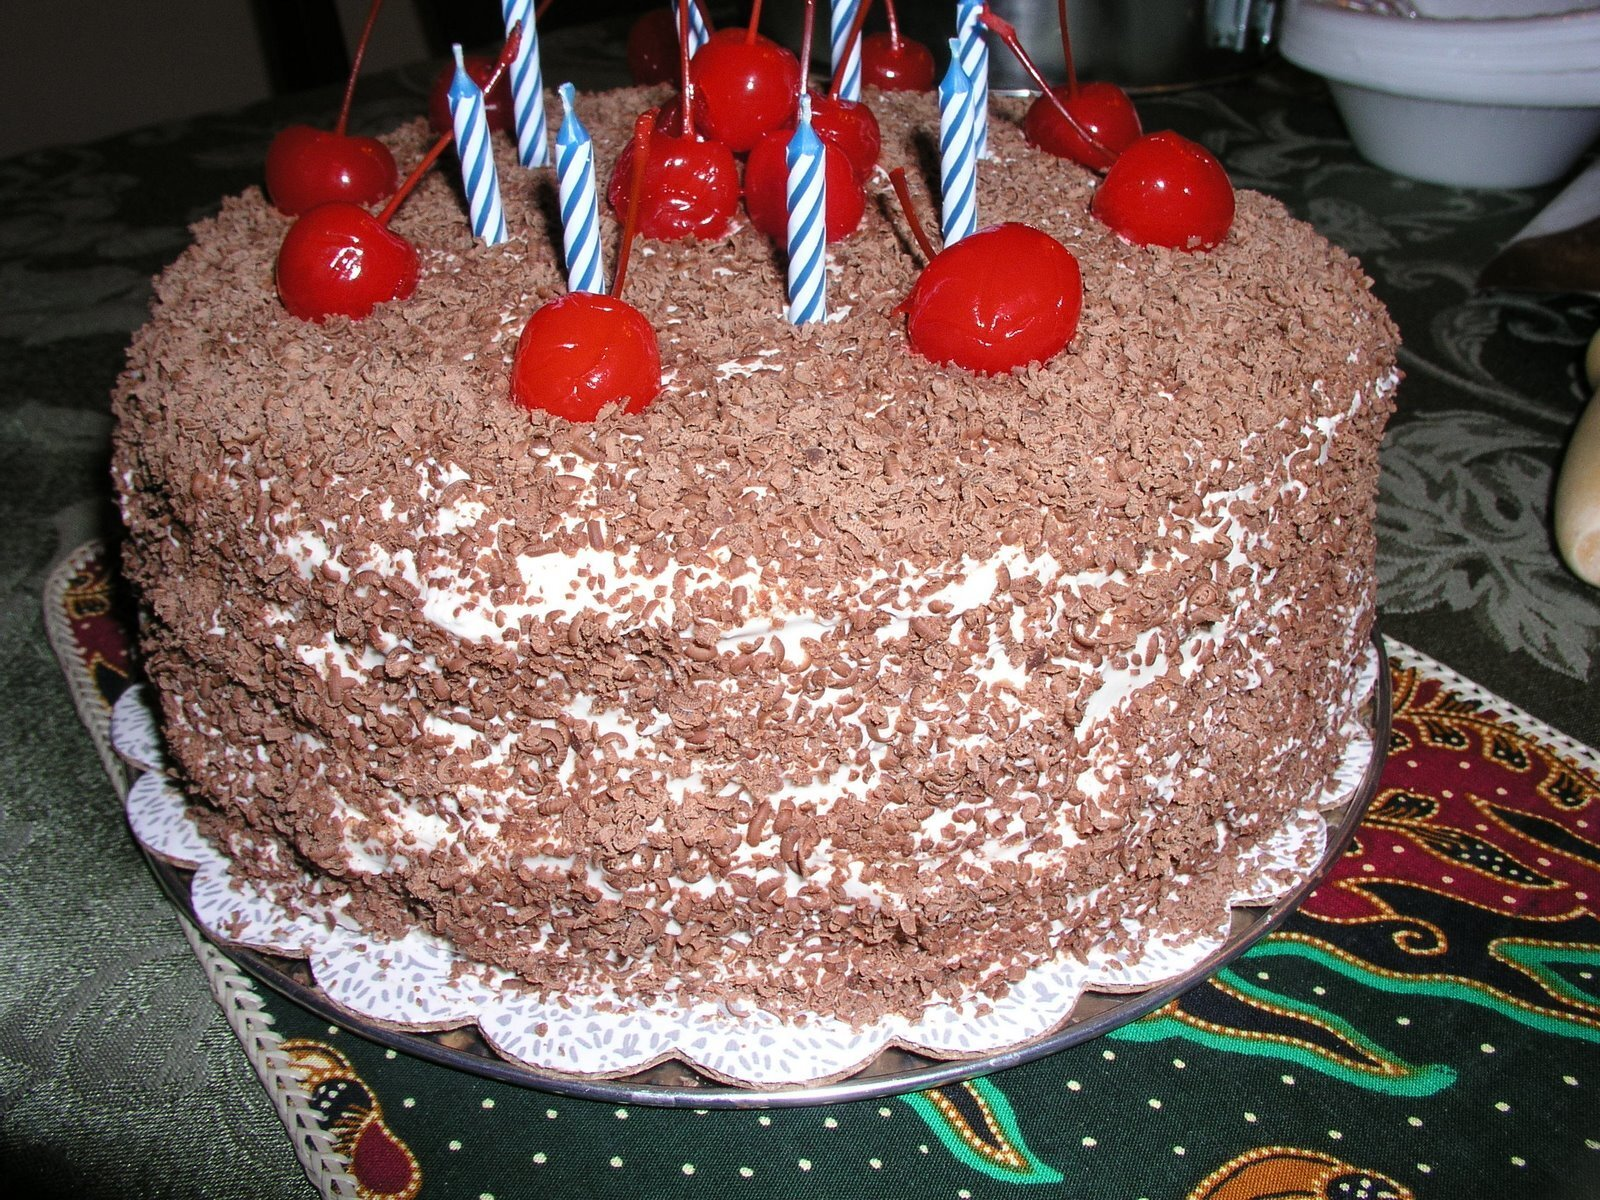 Black Forest Cake From a Box (India Style)